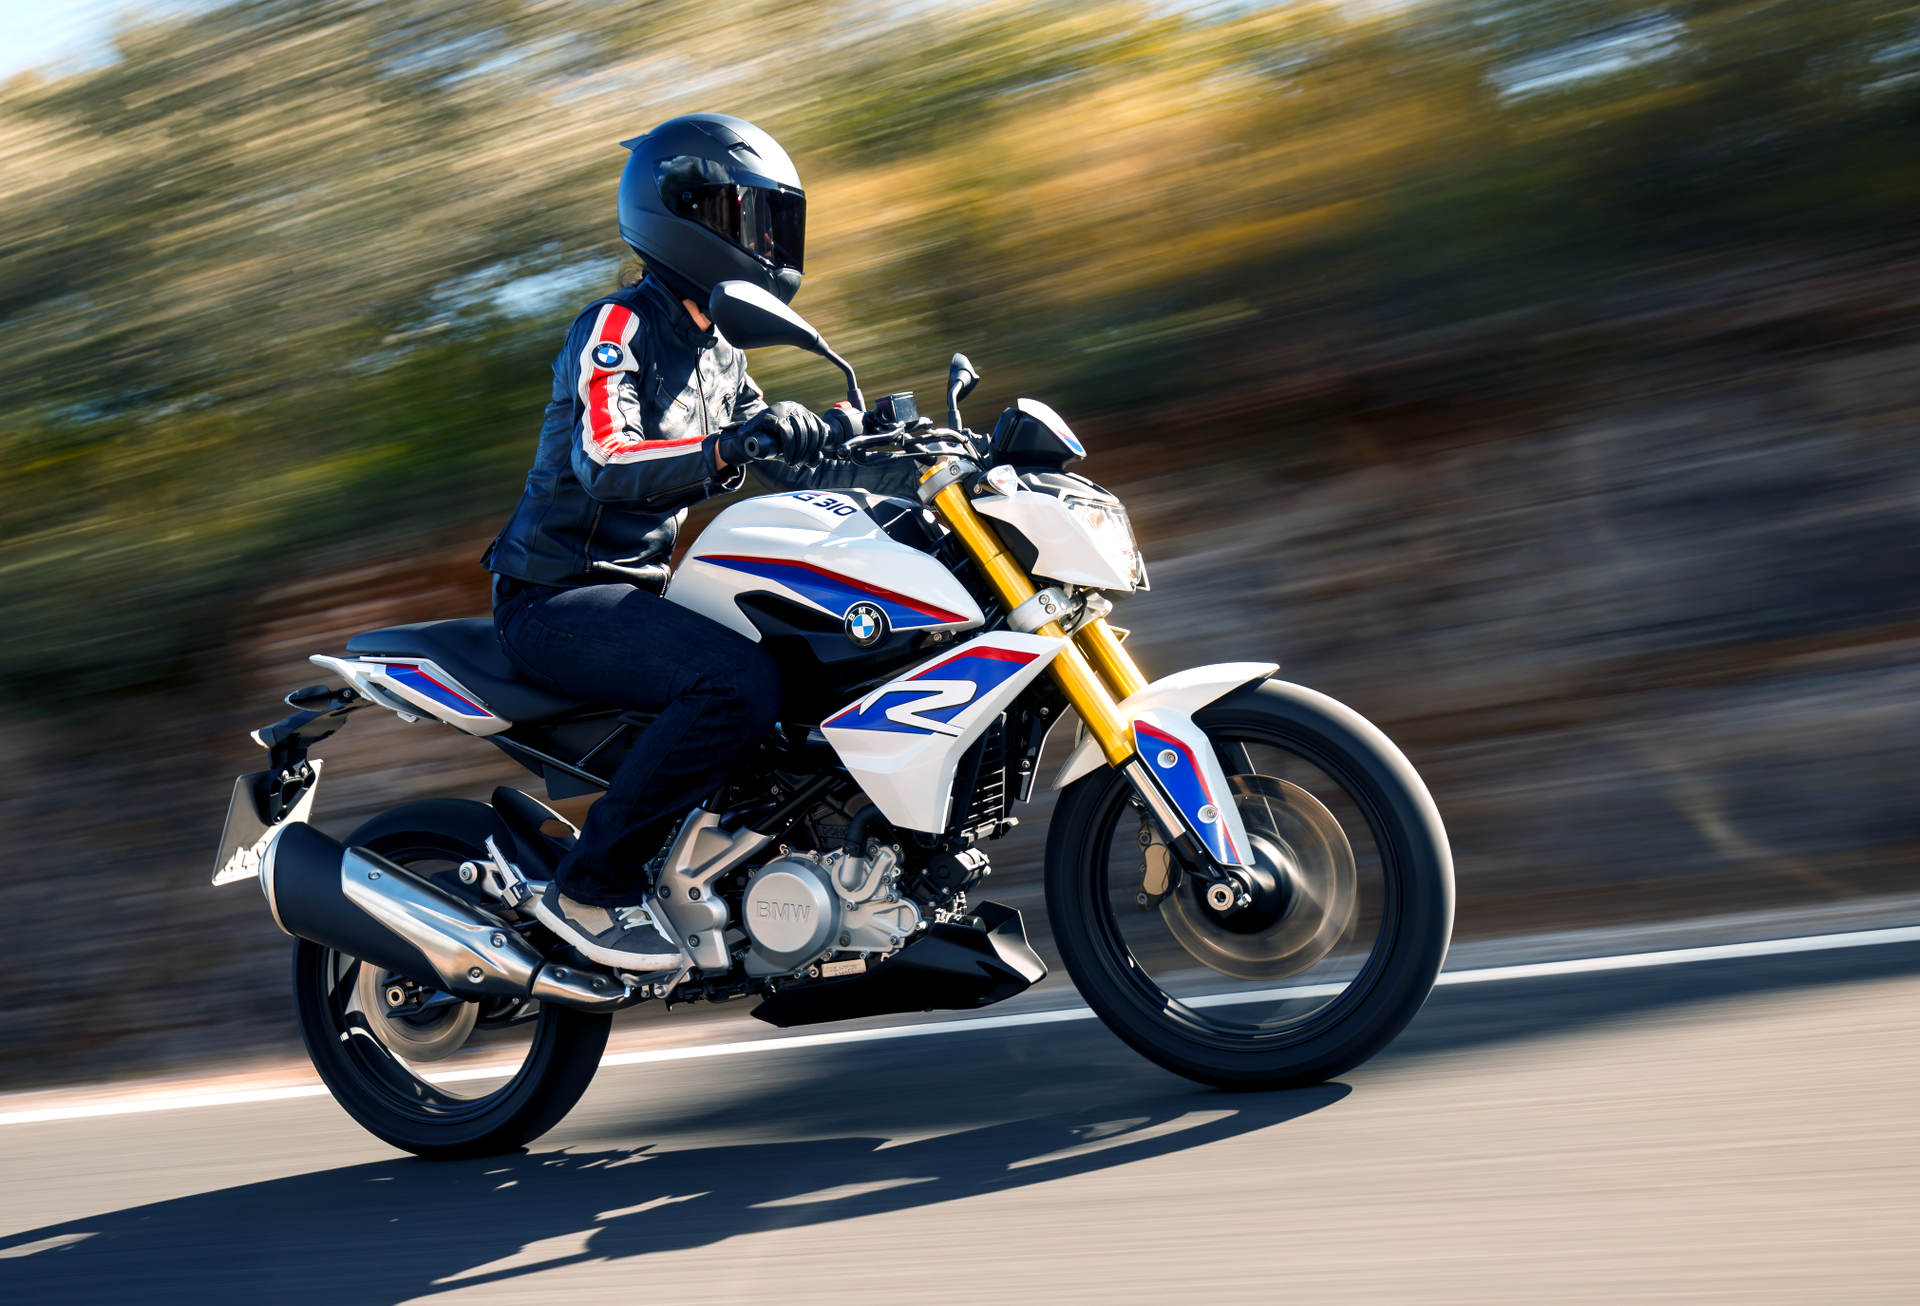 Bmw Introduces New Single Cylinder G 310 R